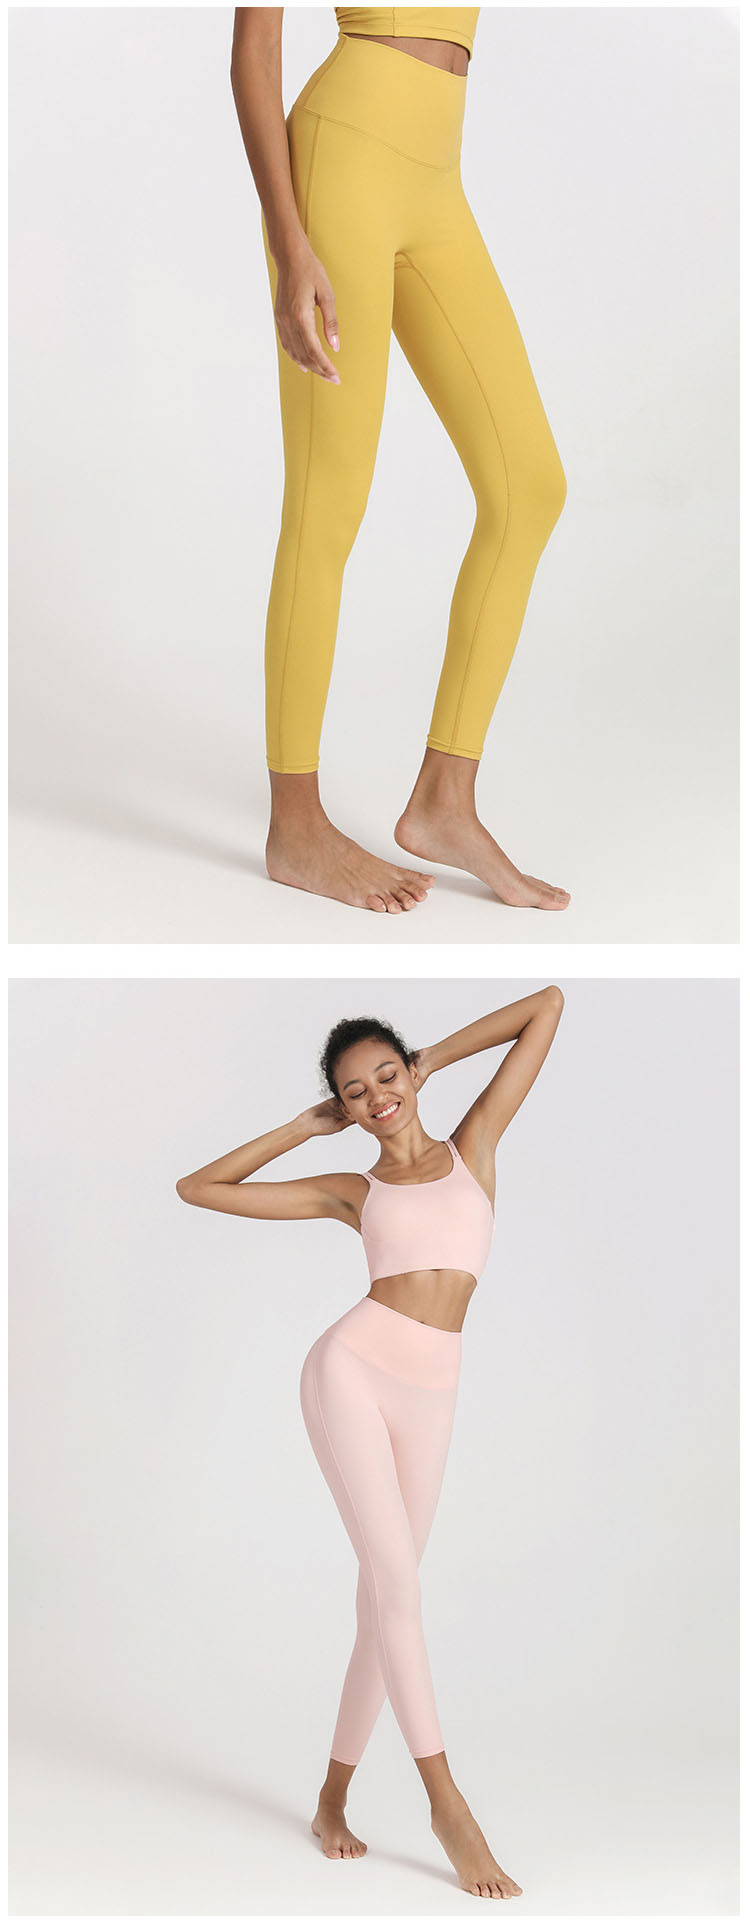 the bright color to attract fashionable consumers.